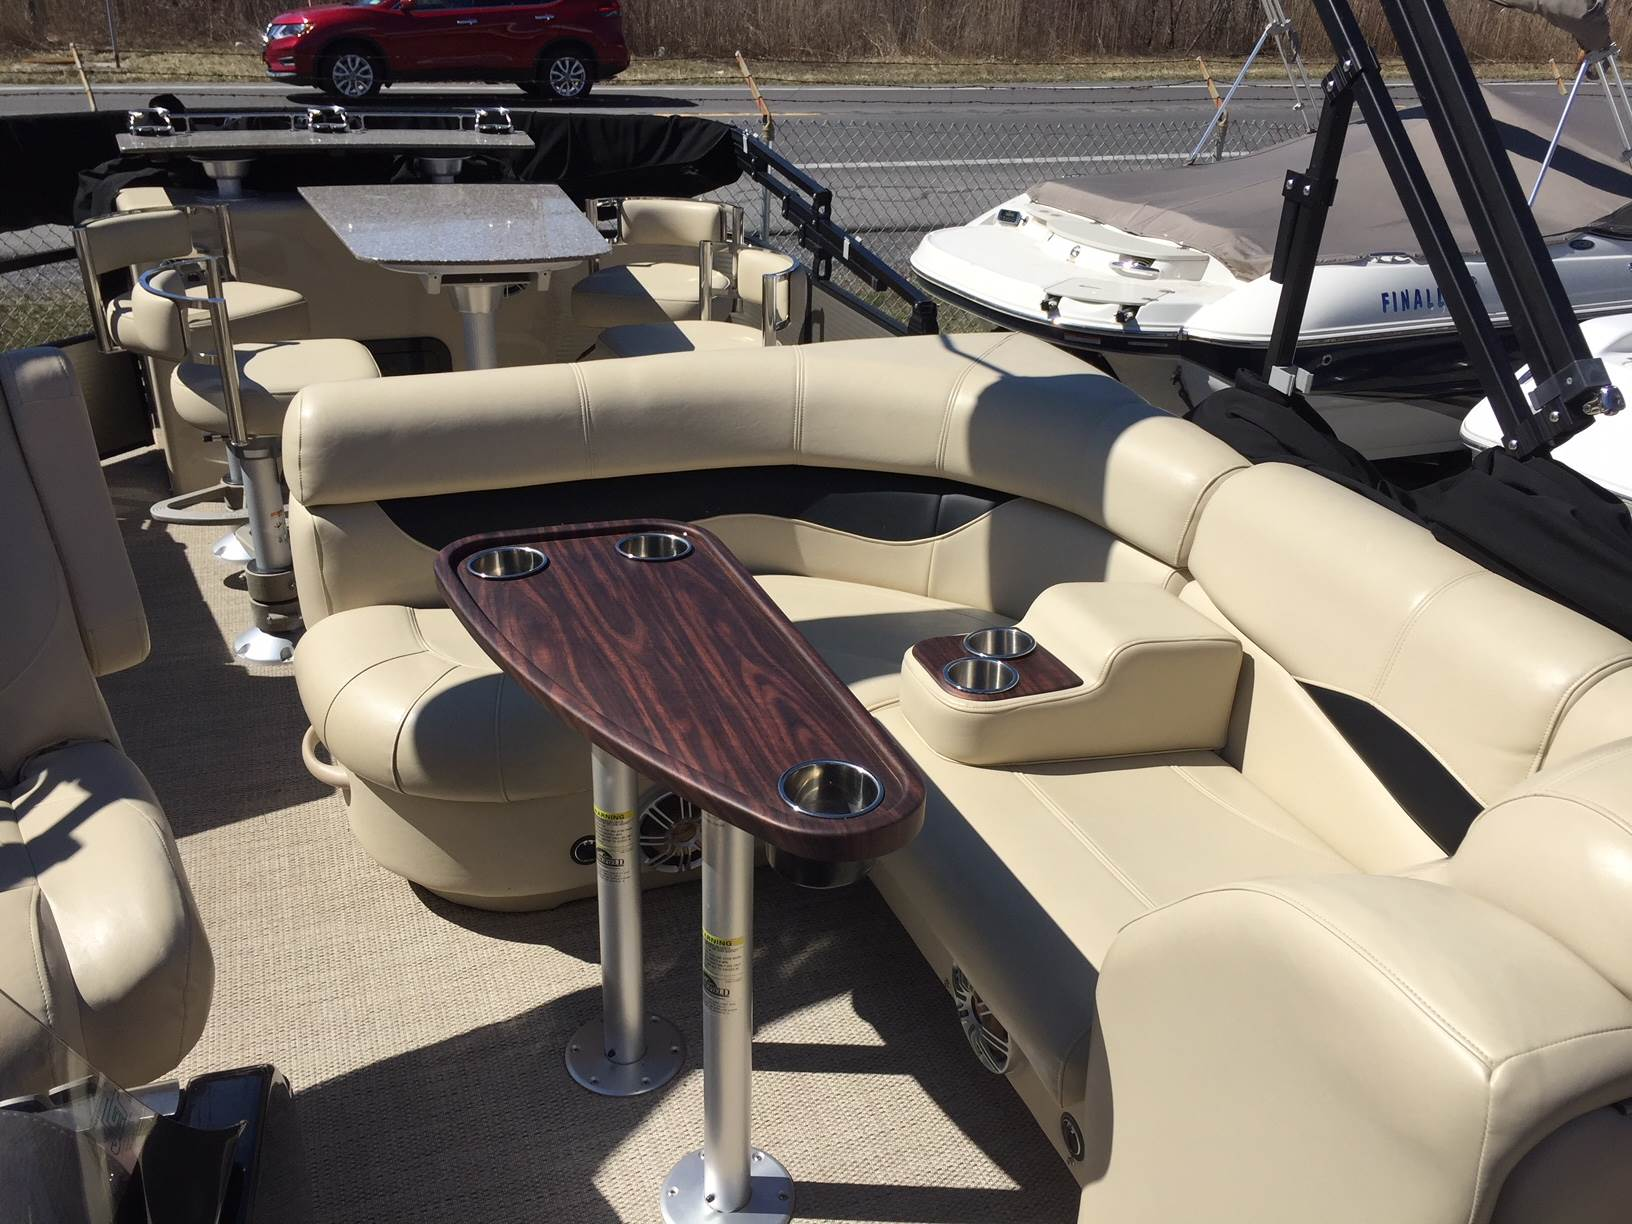 2016 Aqua Patio 240 CB in Bridgeport, New York